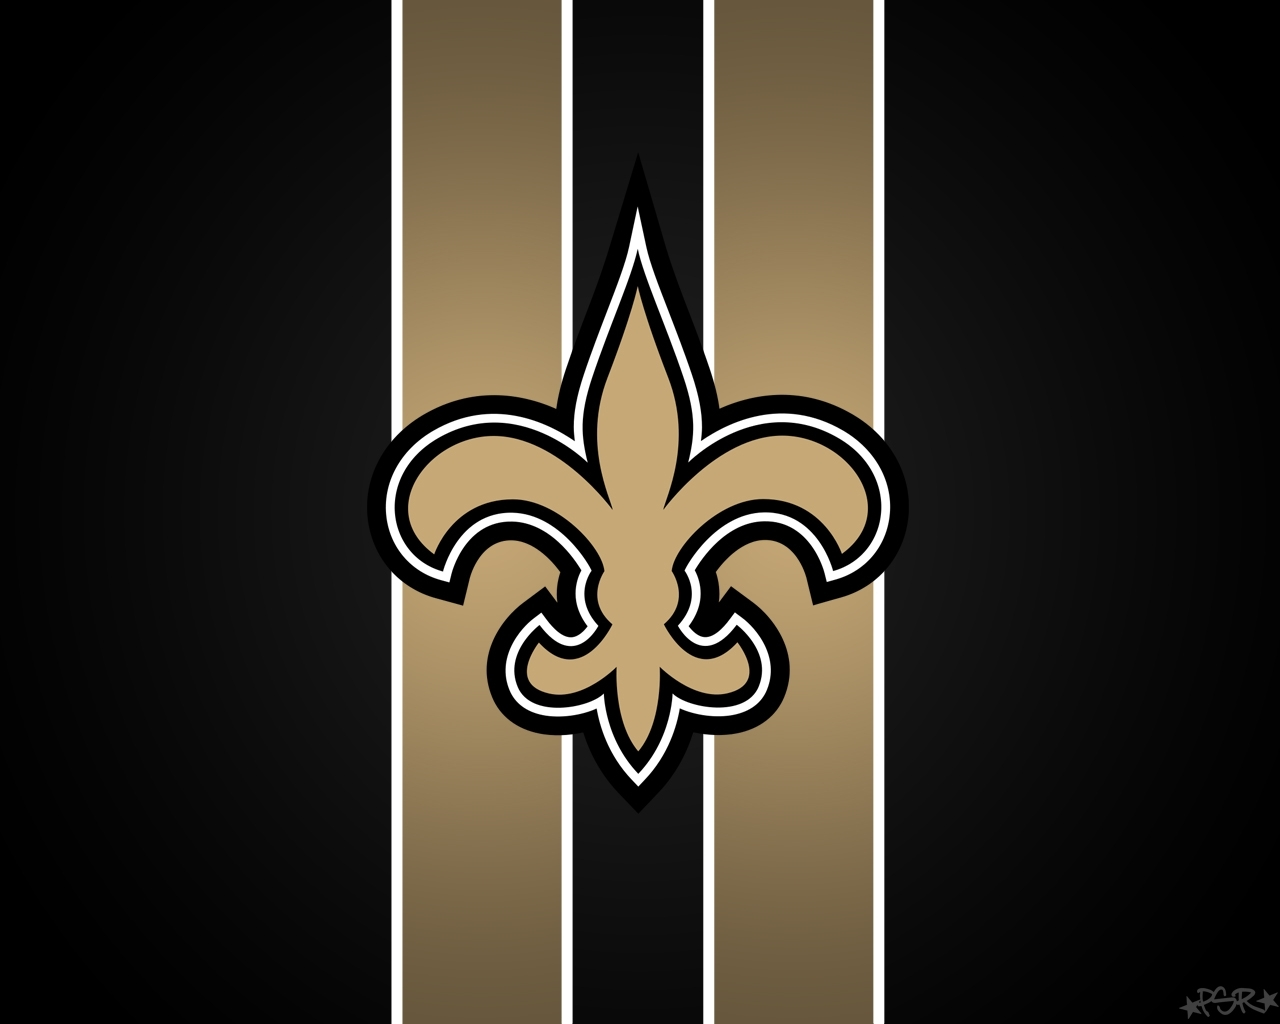 8 new orleans saints hd wallpapers | backgrounds - wallpaper abyss